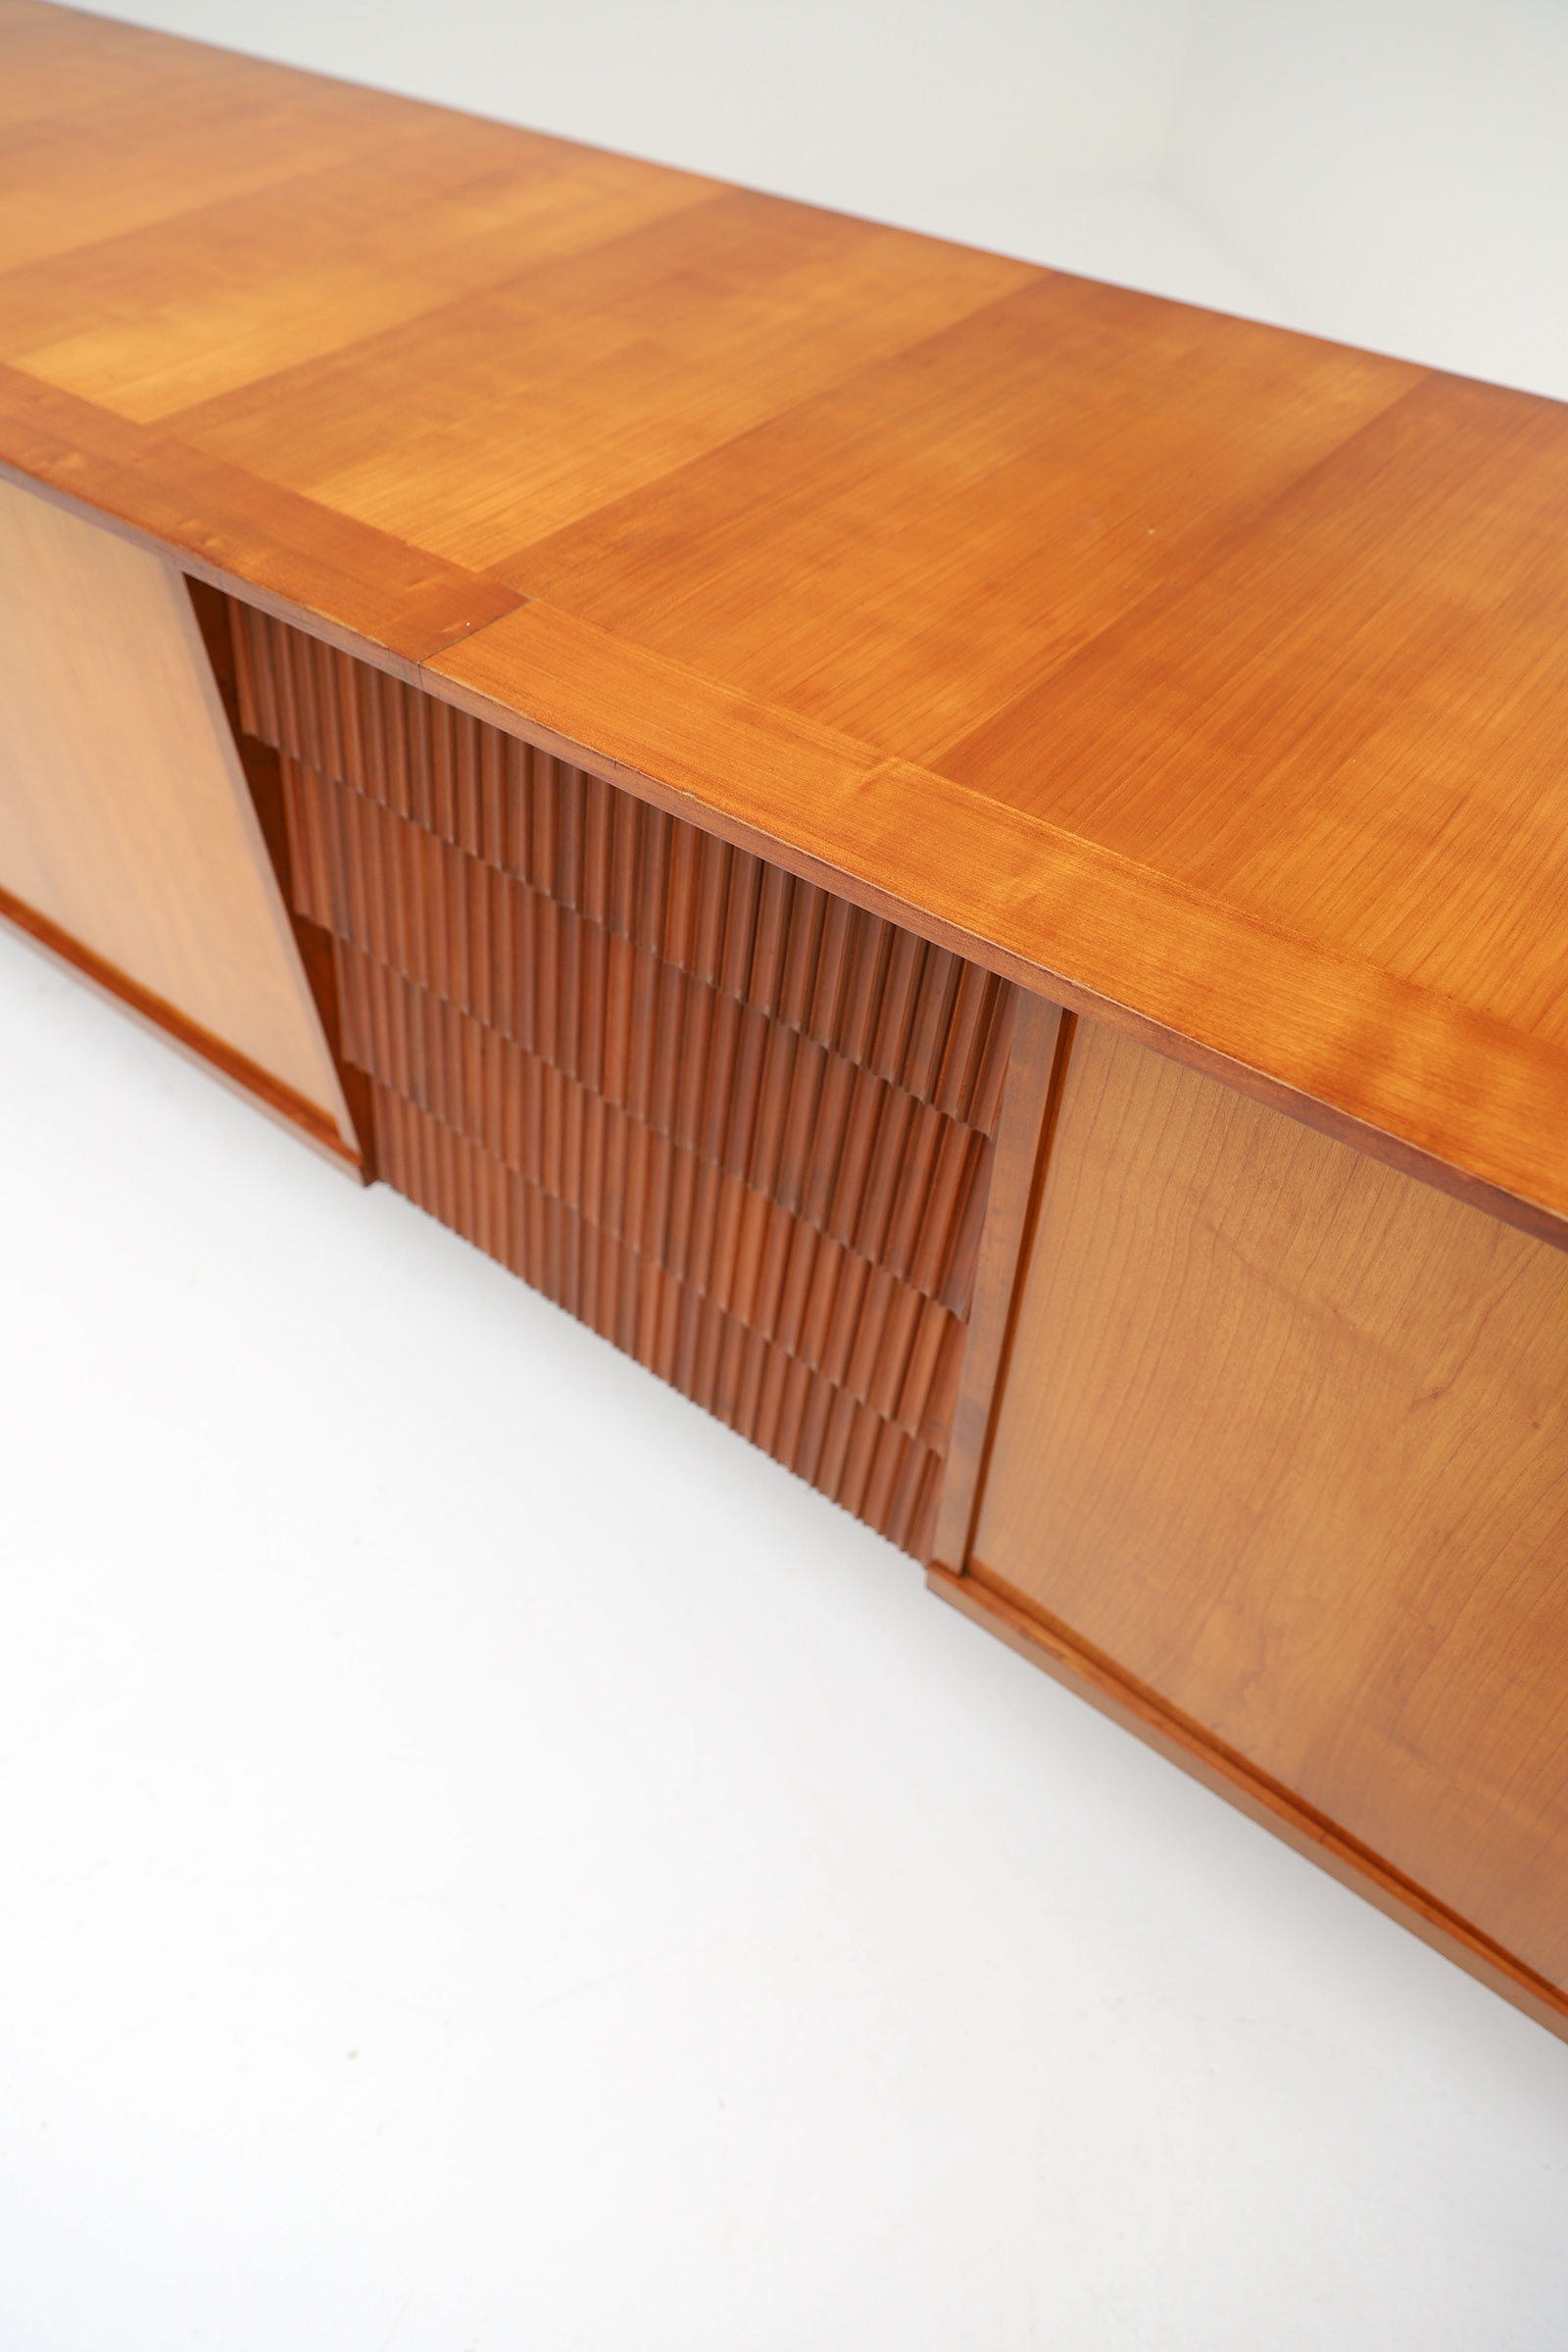 Exceptional Large 1950's Sideboard image 8